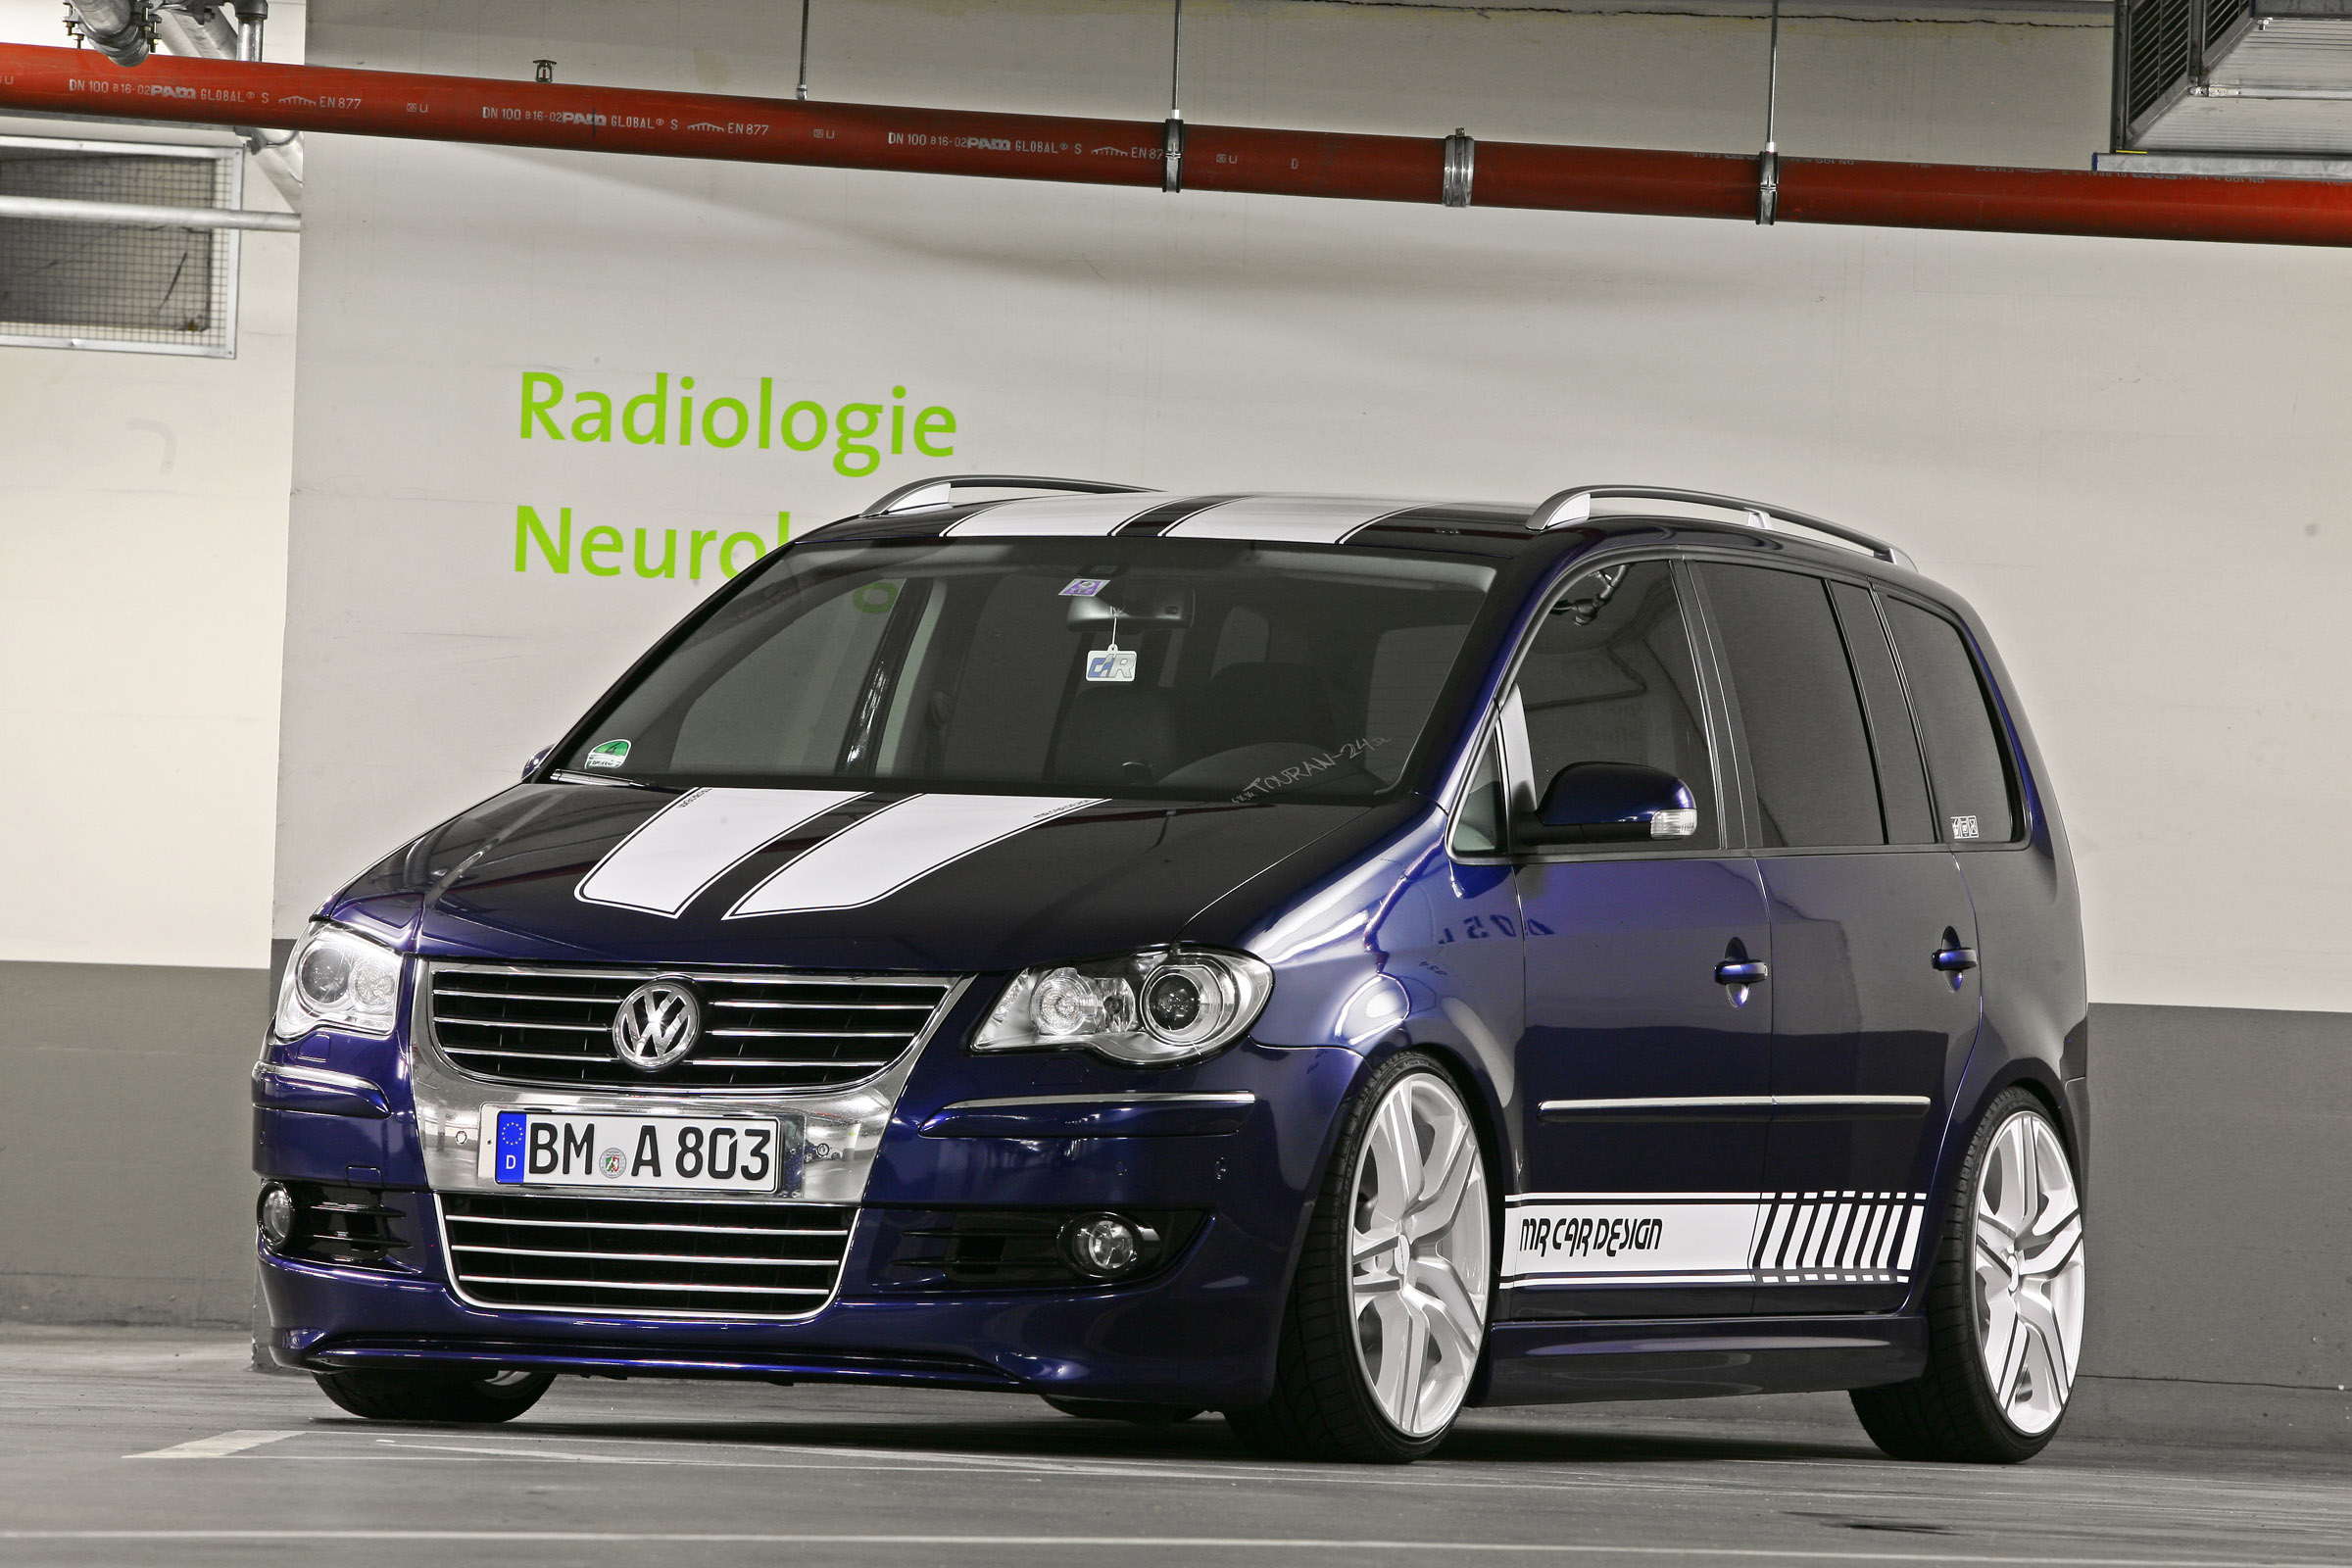 Vw Jan 01 2013 15 36 51 Picture Gallery